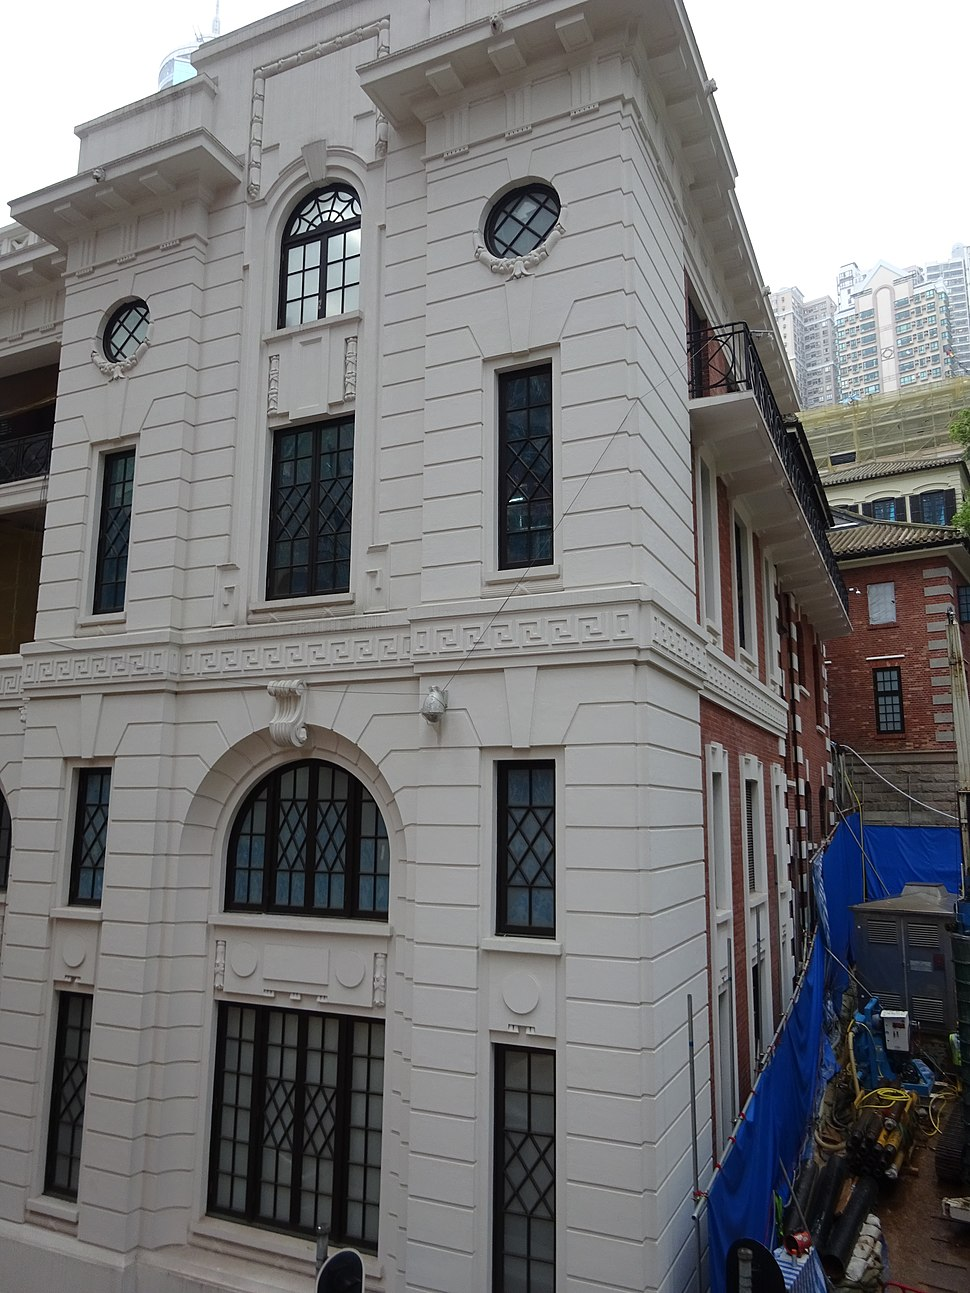 HK Central 舊中區警署 Central Police Station facade 10 Hollywood Road Jan-2016 Old Bailey Street Central-Mid-Levels escalators view